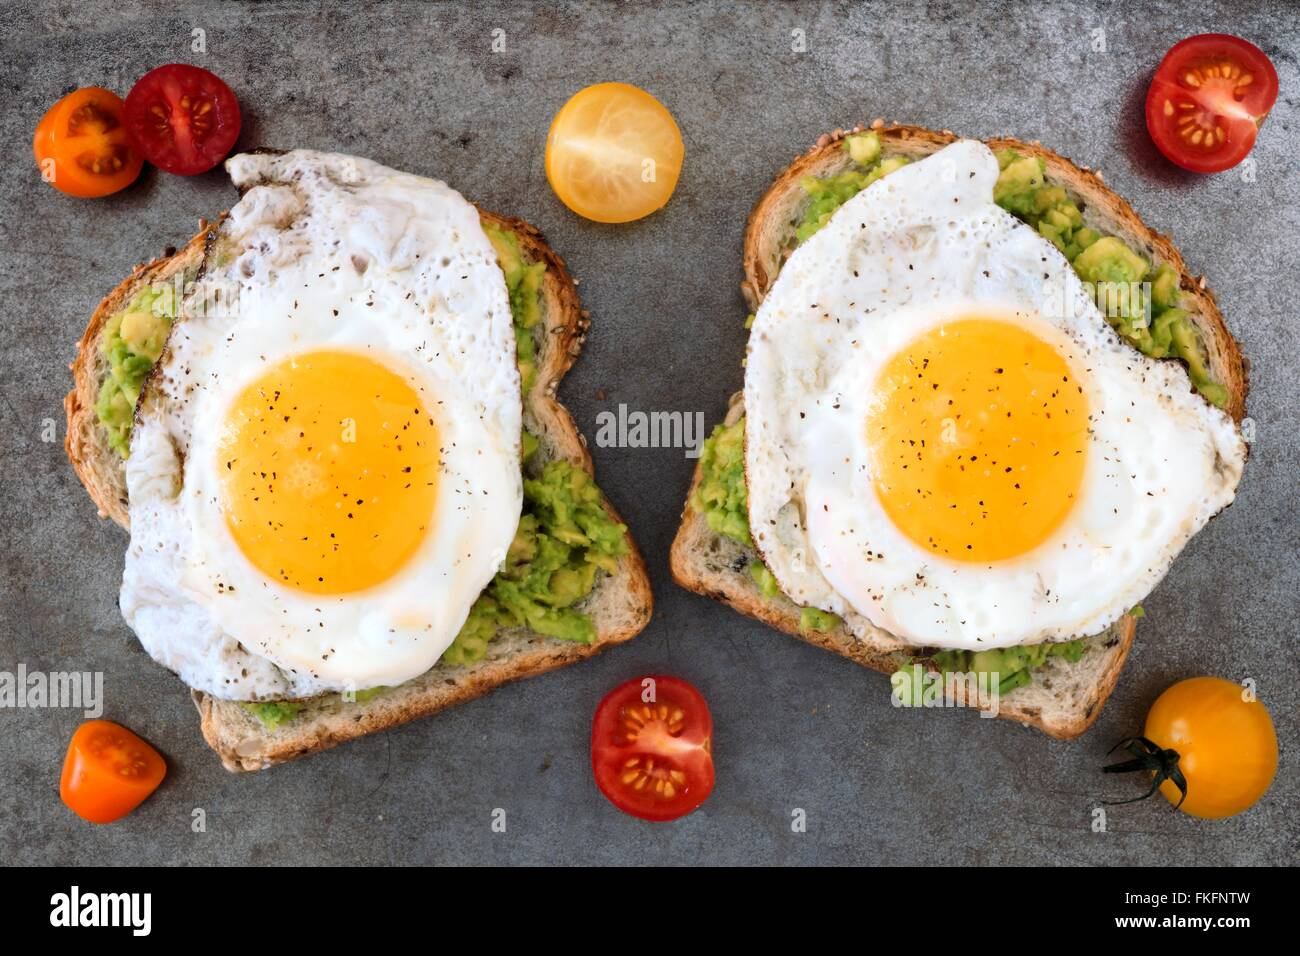 Open avocado, egg sandwiches on whole grain bread with tri-colored tomatoes on rustic baking tray Stock Photo